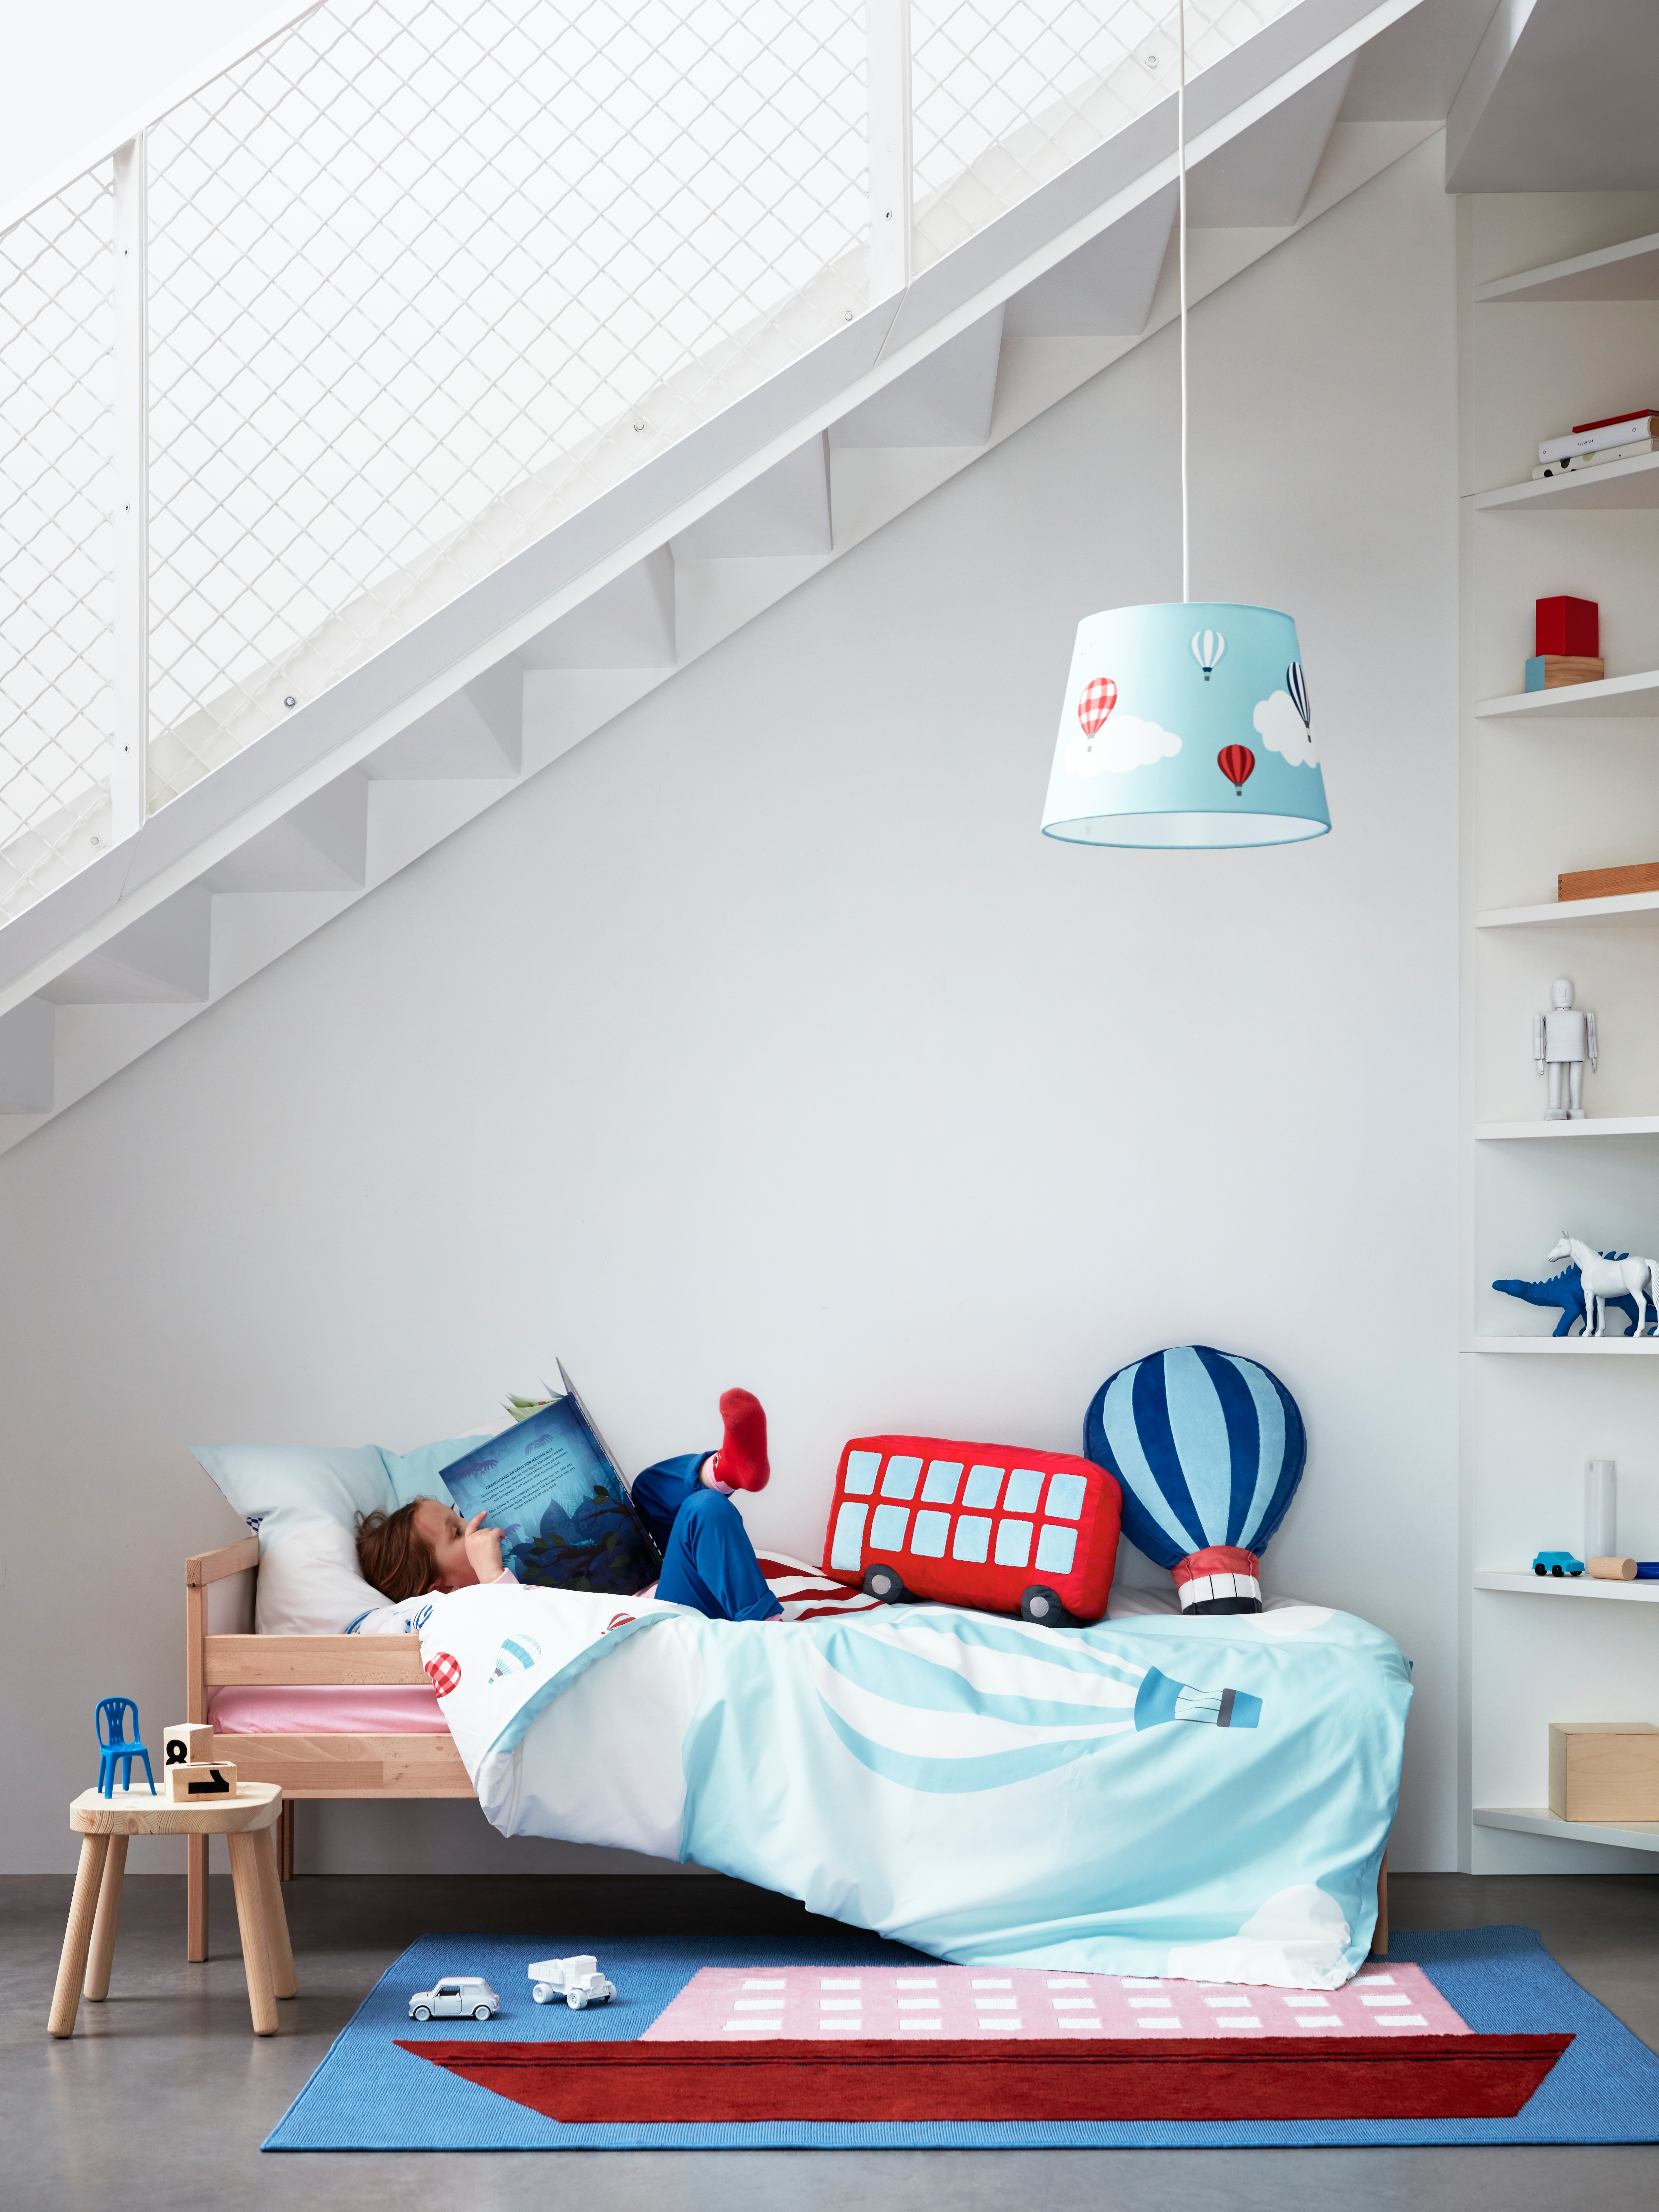 A kid lying reading on a bed with a blue UPPTÅG quilt cover with pillowcases in an air balloon pattern, toys on the bed.